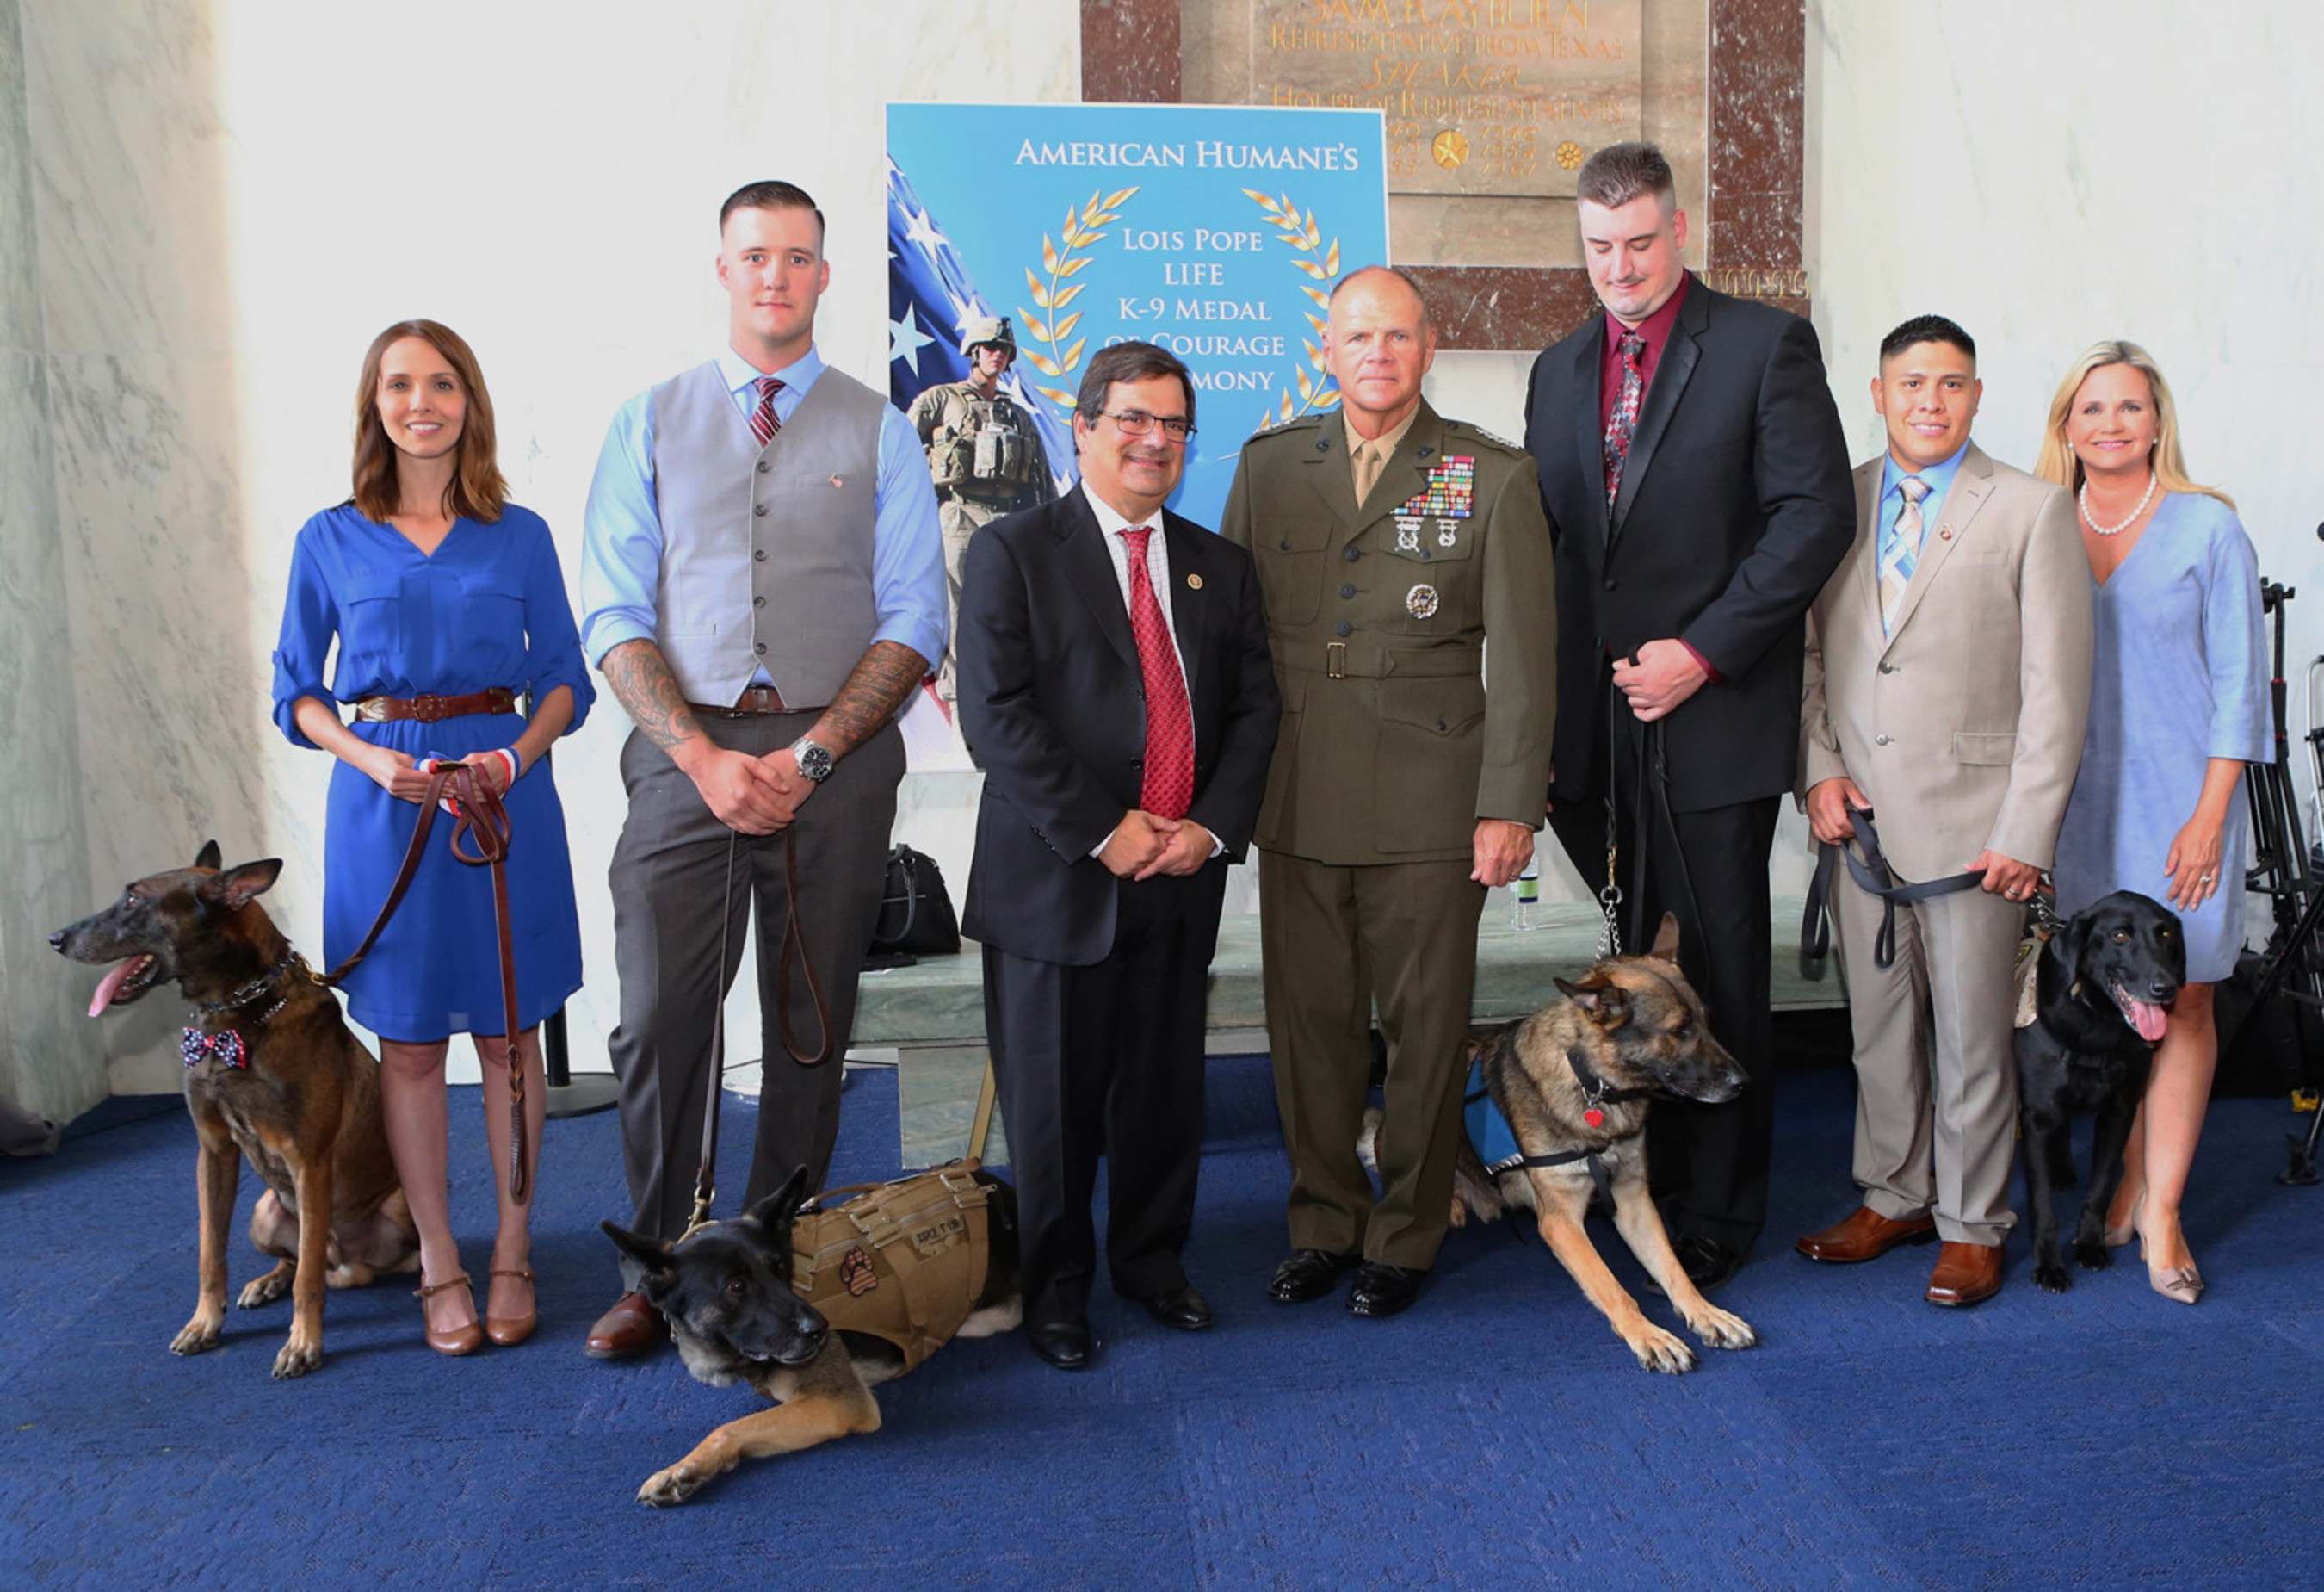 HONORING OUR K9 MILITARY HEROES (left to right): MWD Bond, Sarah Browning, Sgt. Wess Brown, MWD Isky, Congressman Gus Bilirakis, General Robert B. Neller, MWD Matty, Spc. Brent Grommet, Corp. Nick Caceres, CWD Fieldy, American Humane President Dr. Robin Ganzert